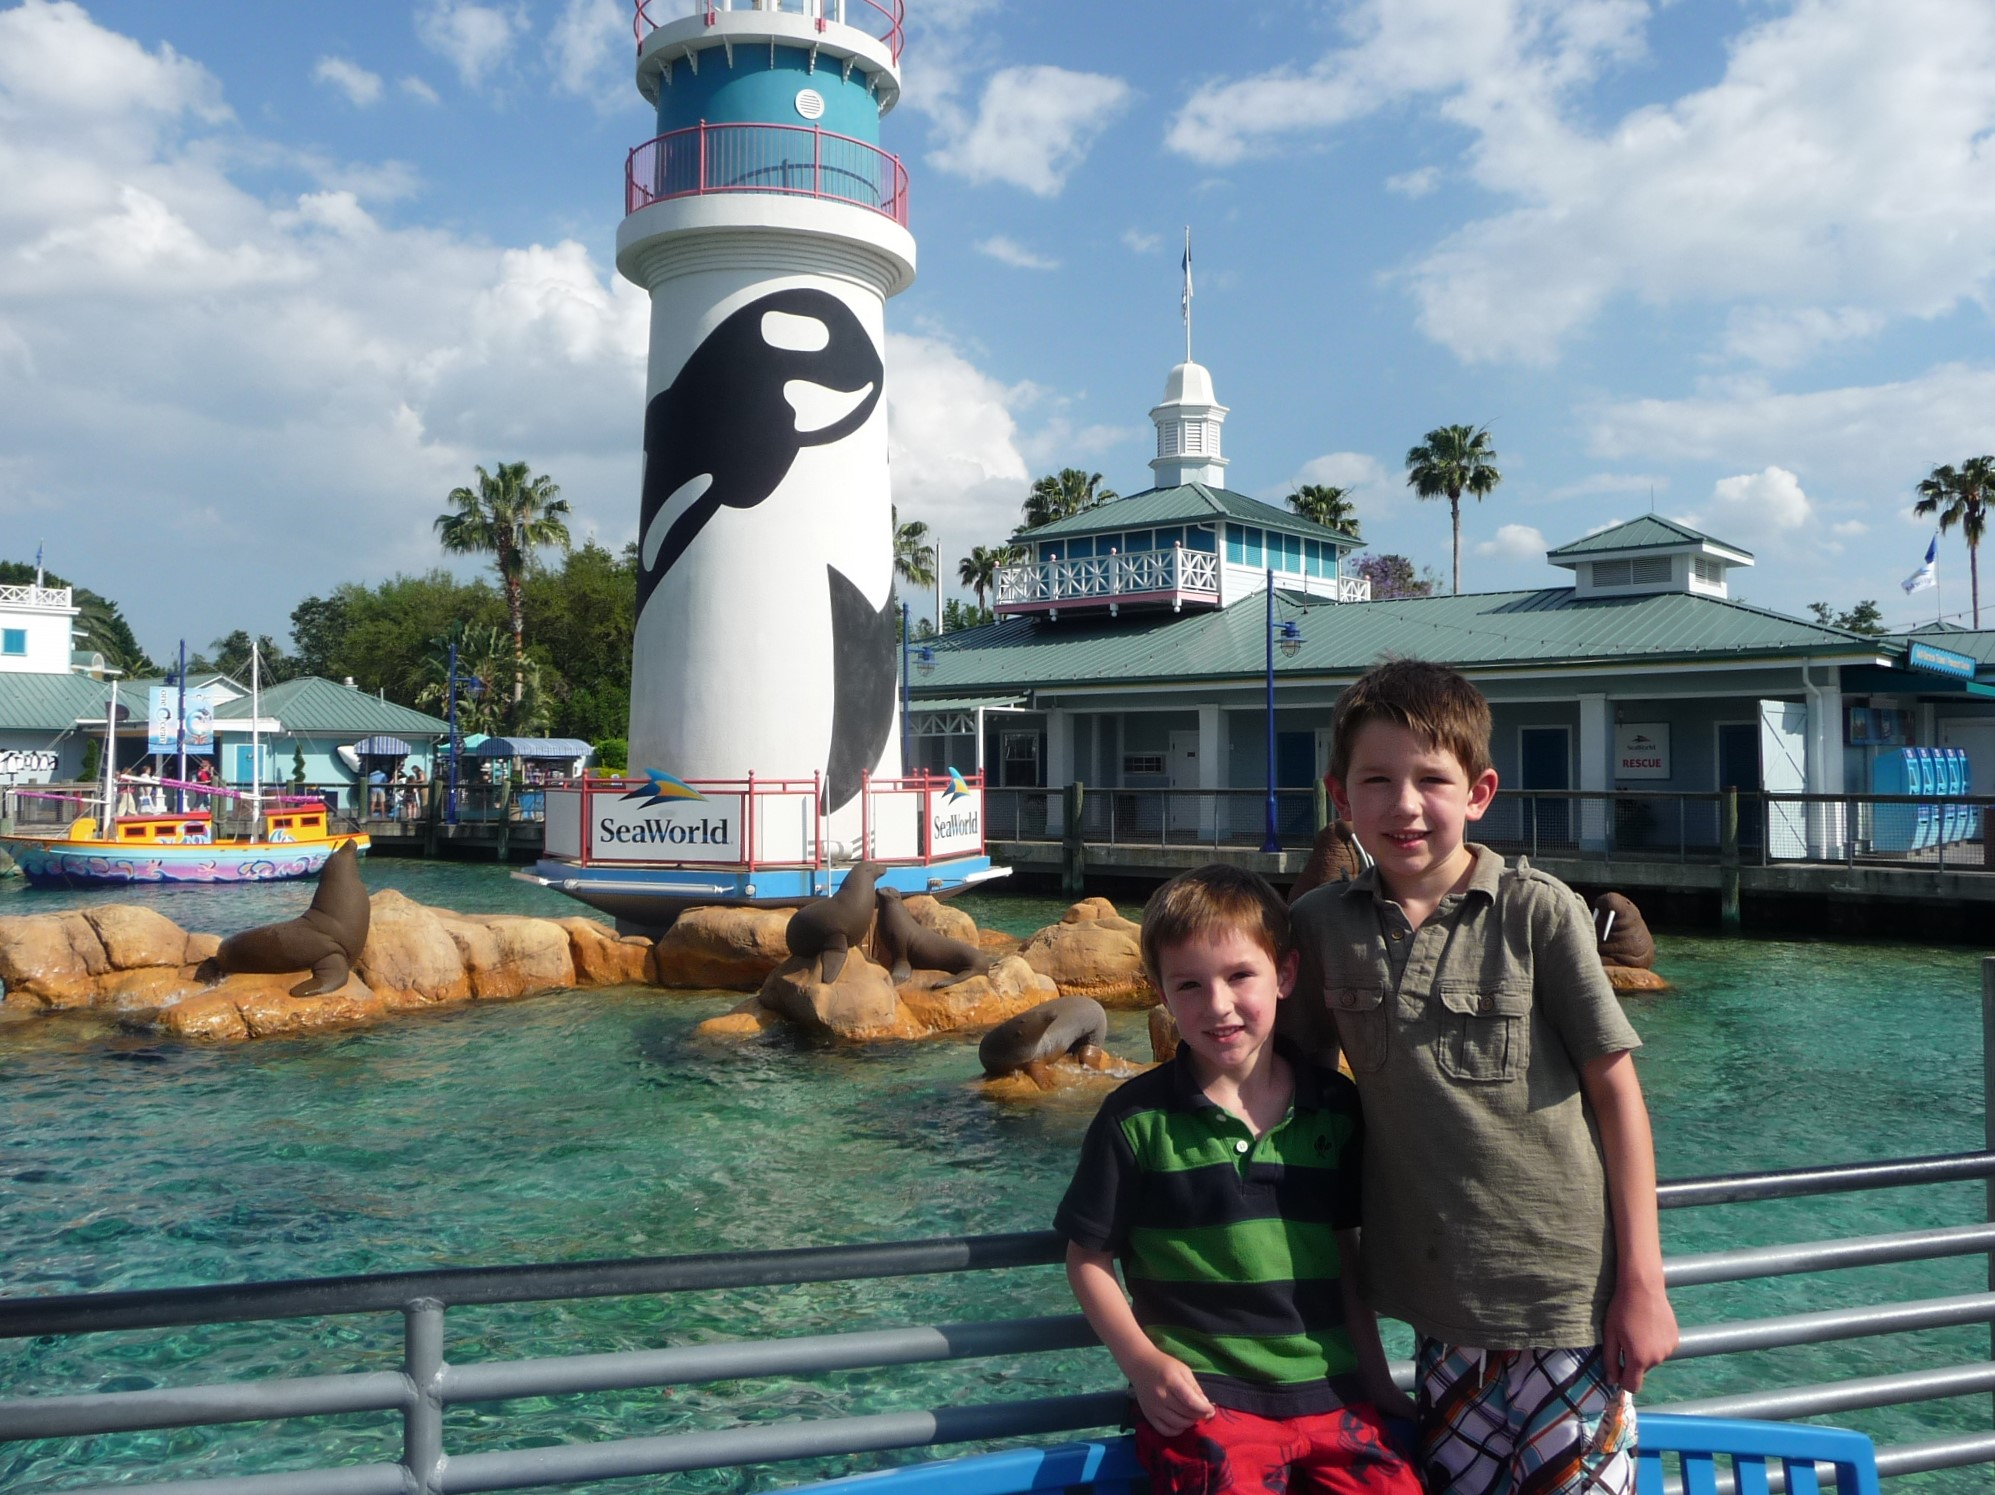 two smiling boys posing in front of a SeaWorld exhibit in Orlando FL